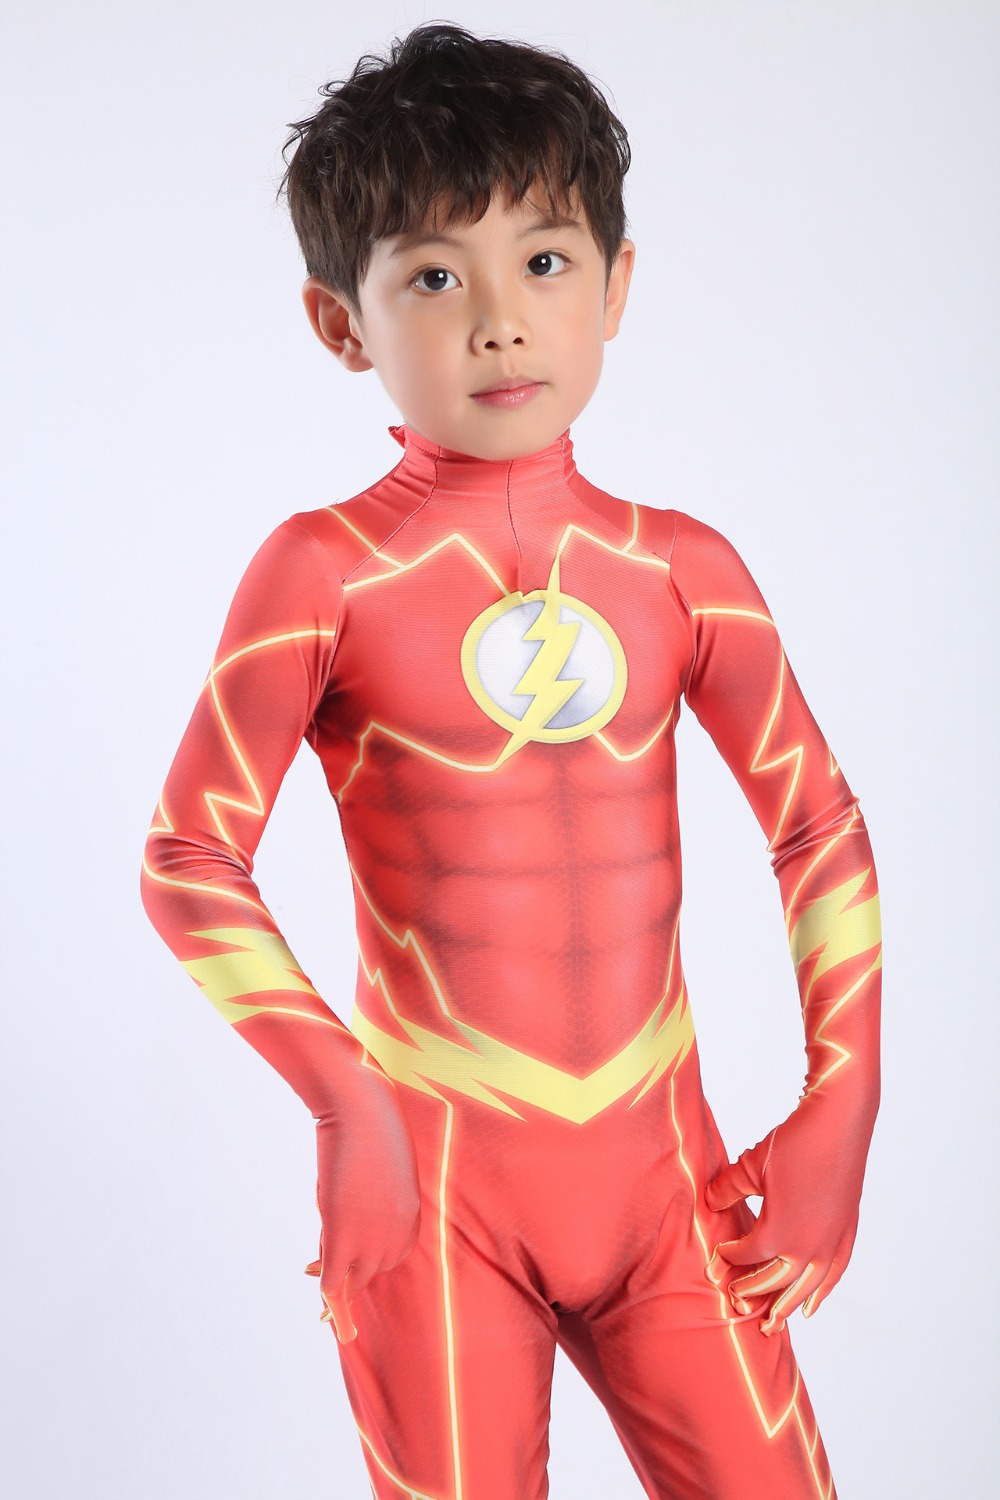 Kids Magical Fancy Flash Man cosplay costume zentai suit Lycra Spandex jumpsuit body suit for Halloween costumes free shipping